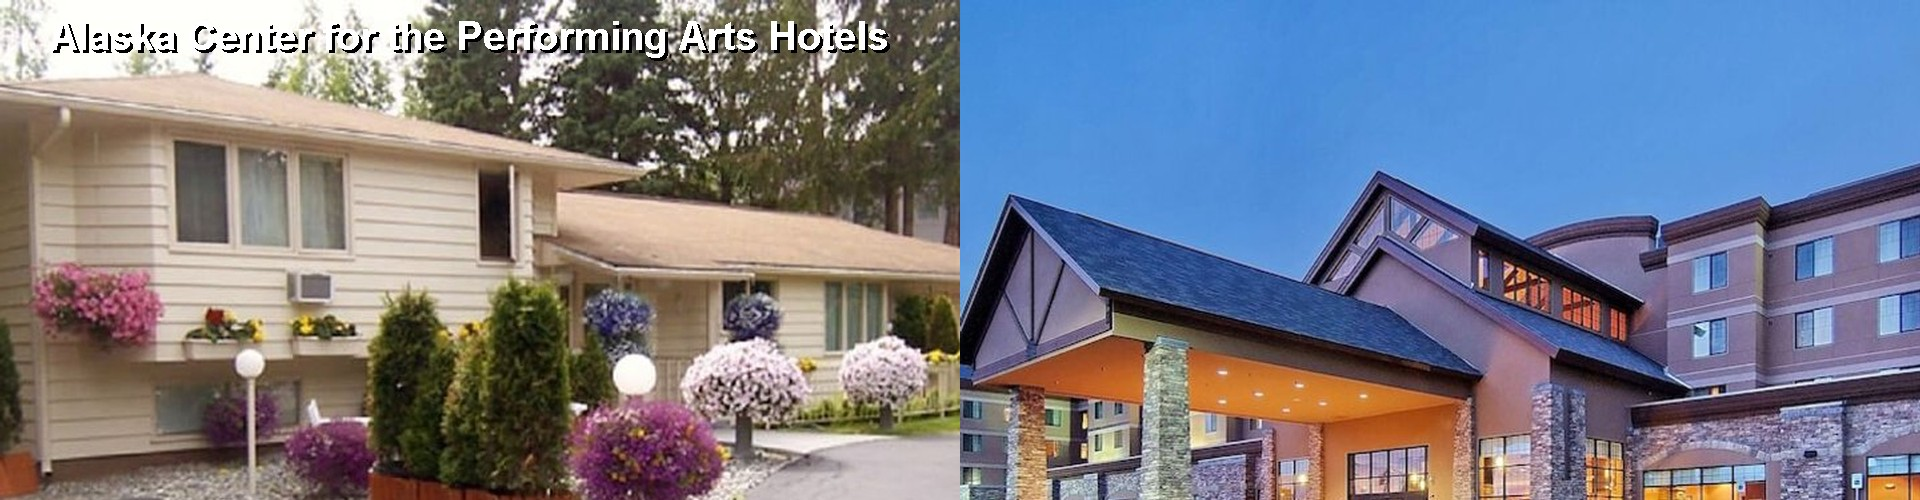 5 Best Hotels near Alaska Center for the Performing Arts